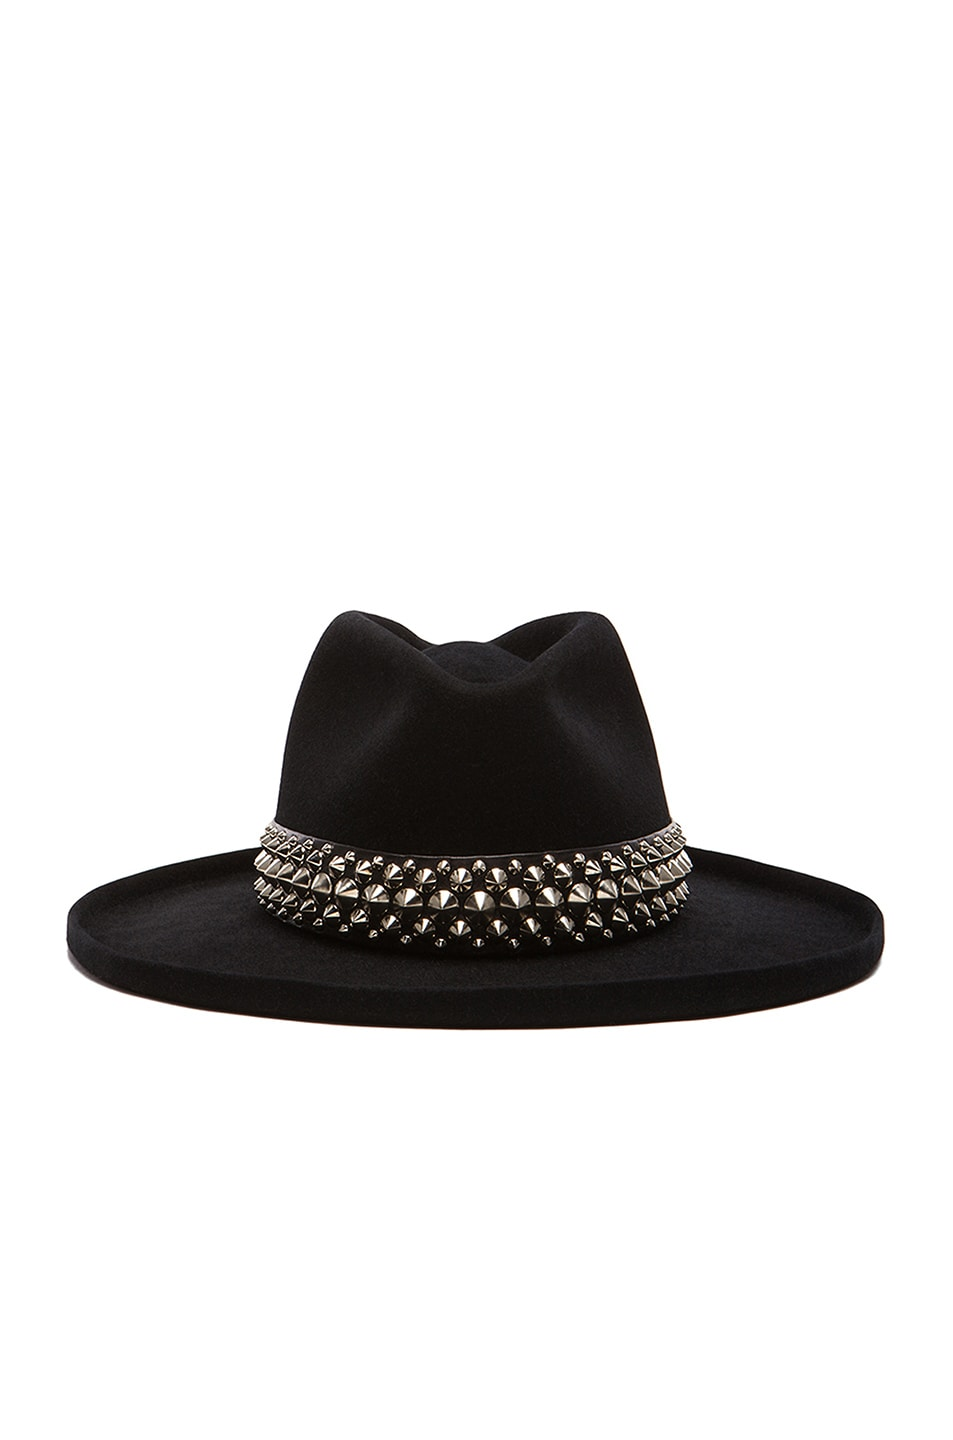 Image 1 of Gladys Tamez Millinery The Johnny Hat with Studded Band in Black